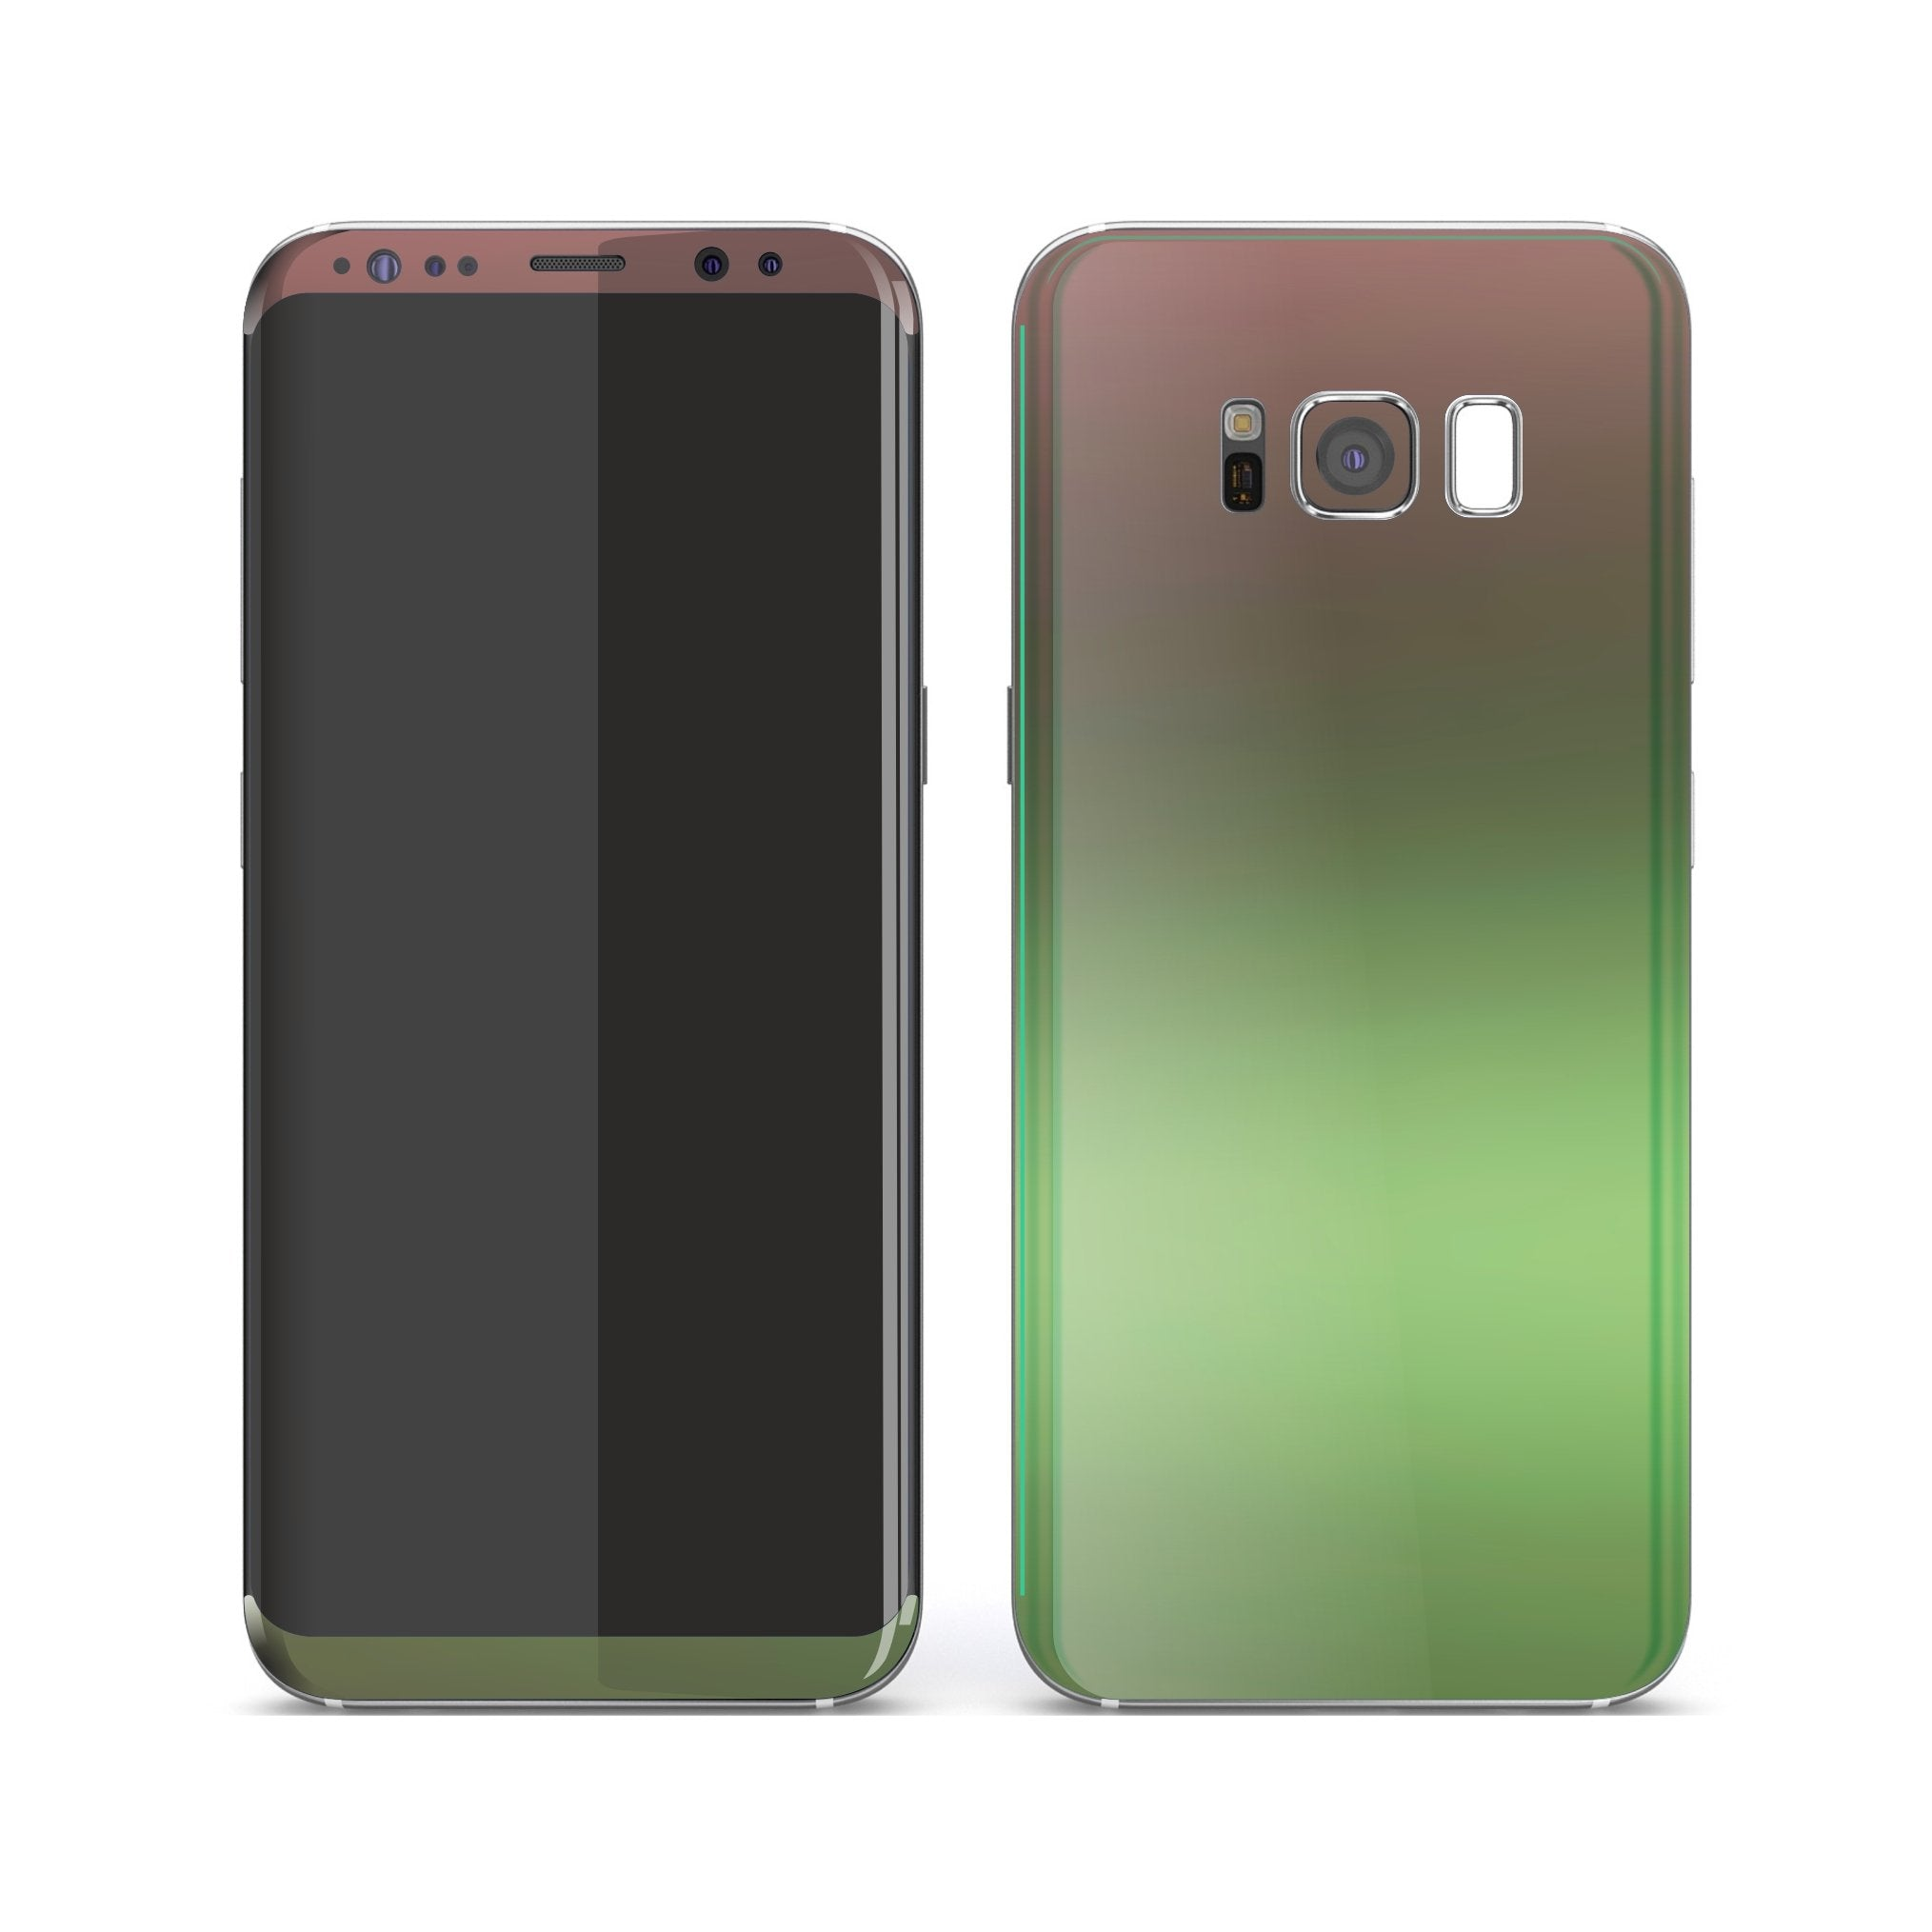 Samsung Galaxy S8+ Chameleon Avocado Colour-Changing Skin, Decal, Wrap, Protector, Cover by EasySkinz | EasySkinz.com